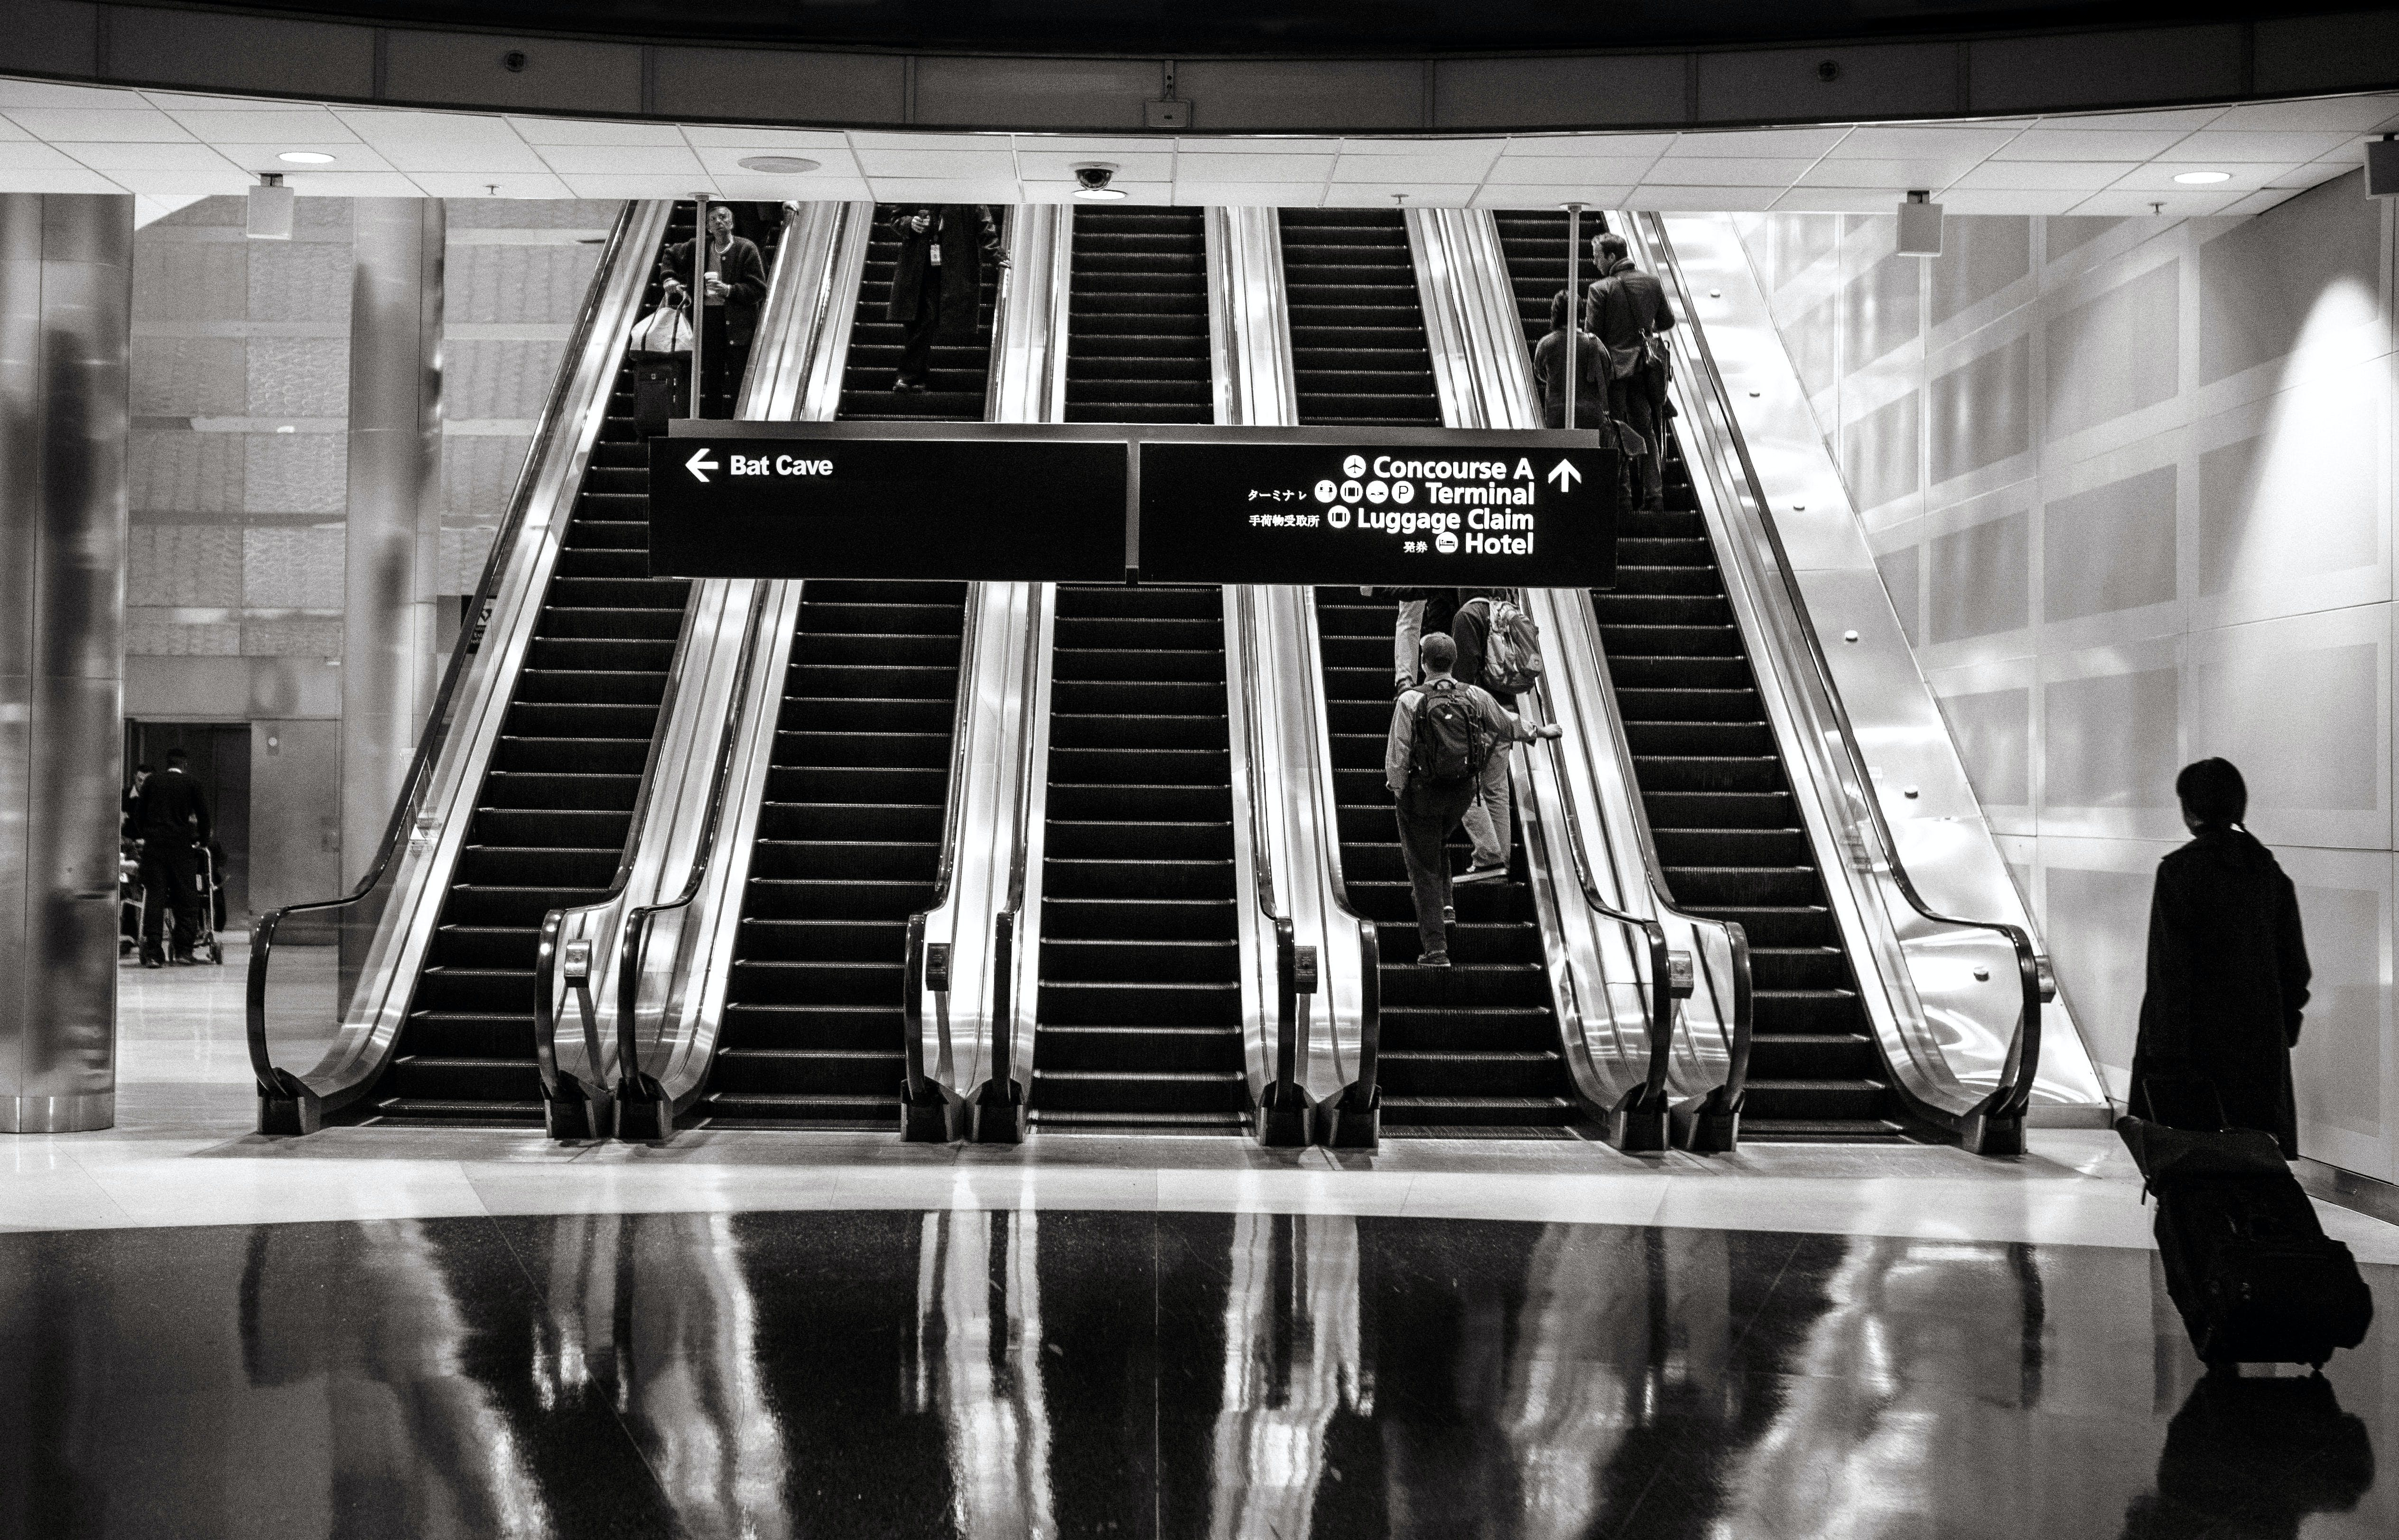 Free stock photo of stairs, people, airport, escalators